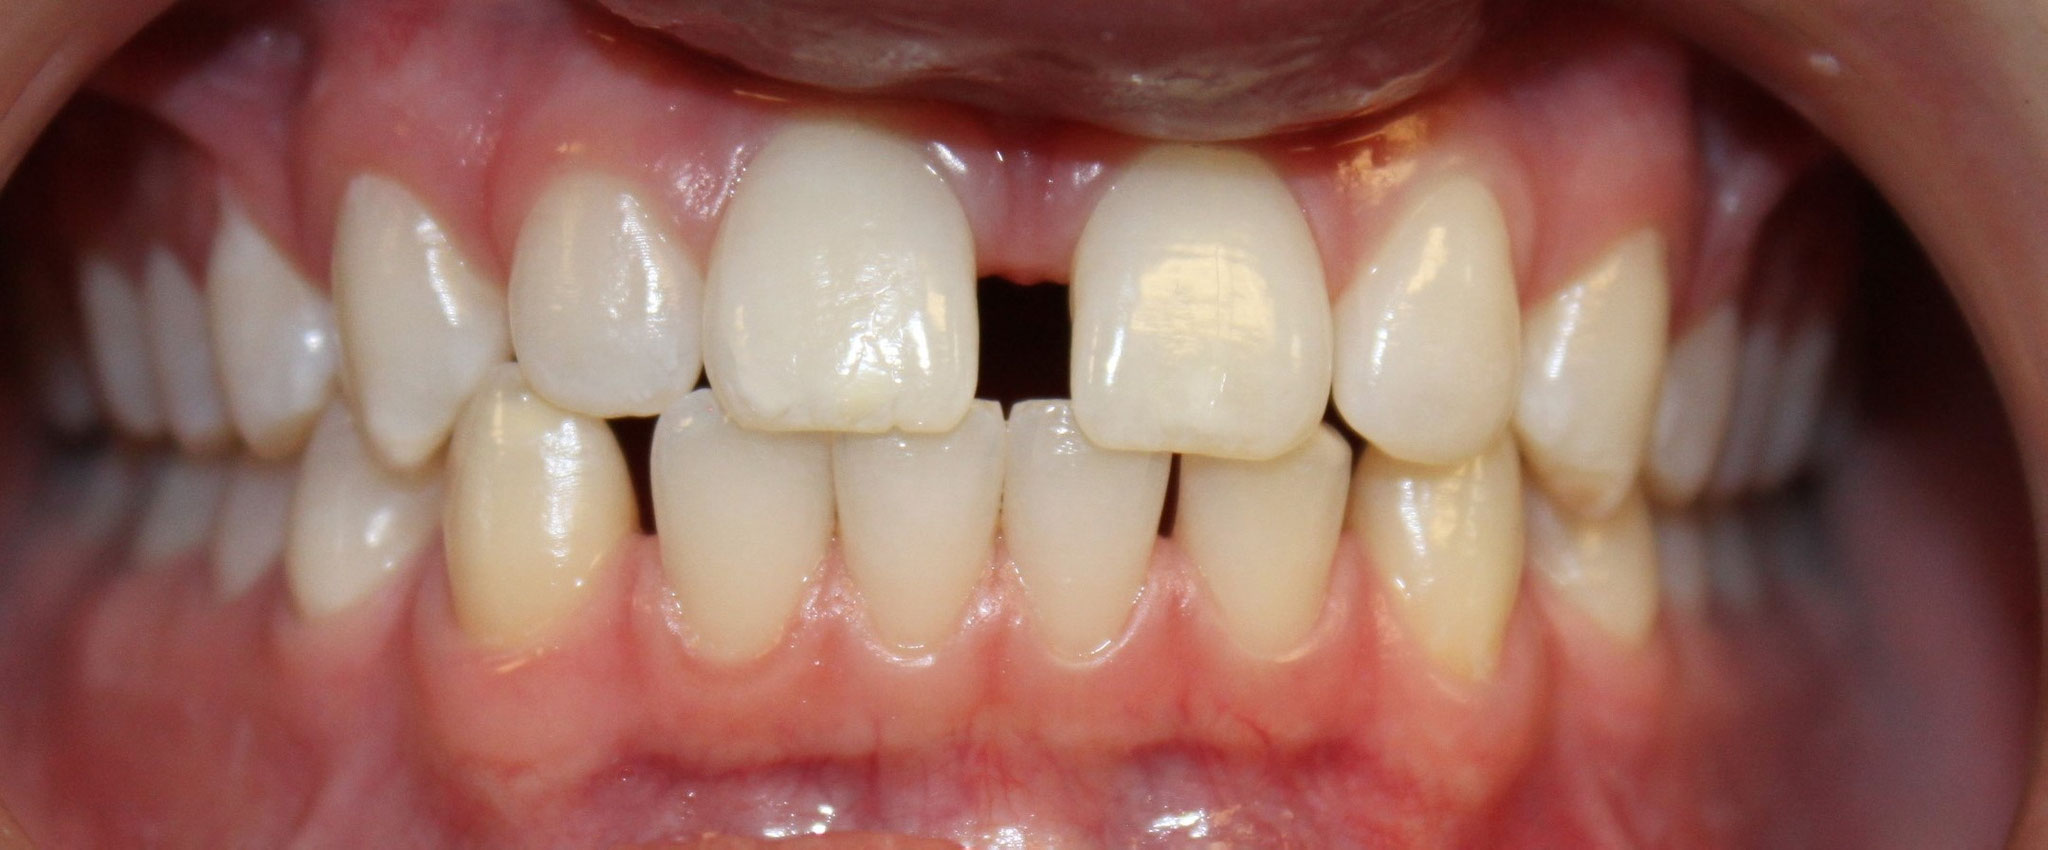 5) BEFORE | Invisalign treatment patient had severe gapping